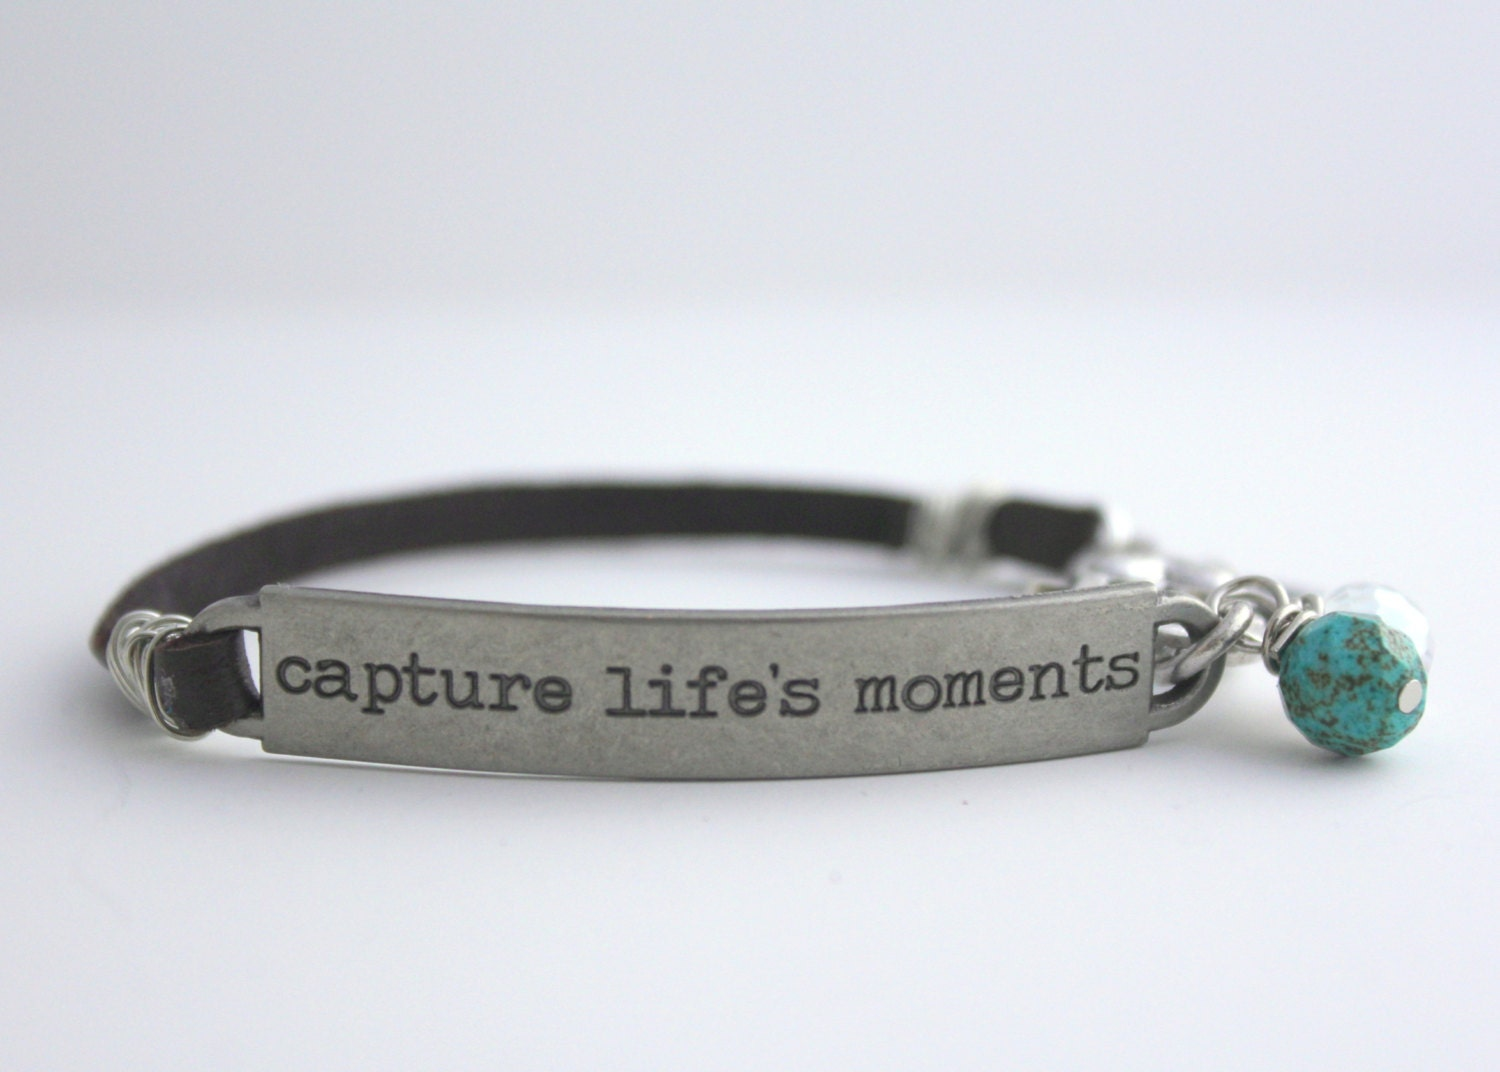 leather bracelet inspirational quote capture life 39 s